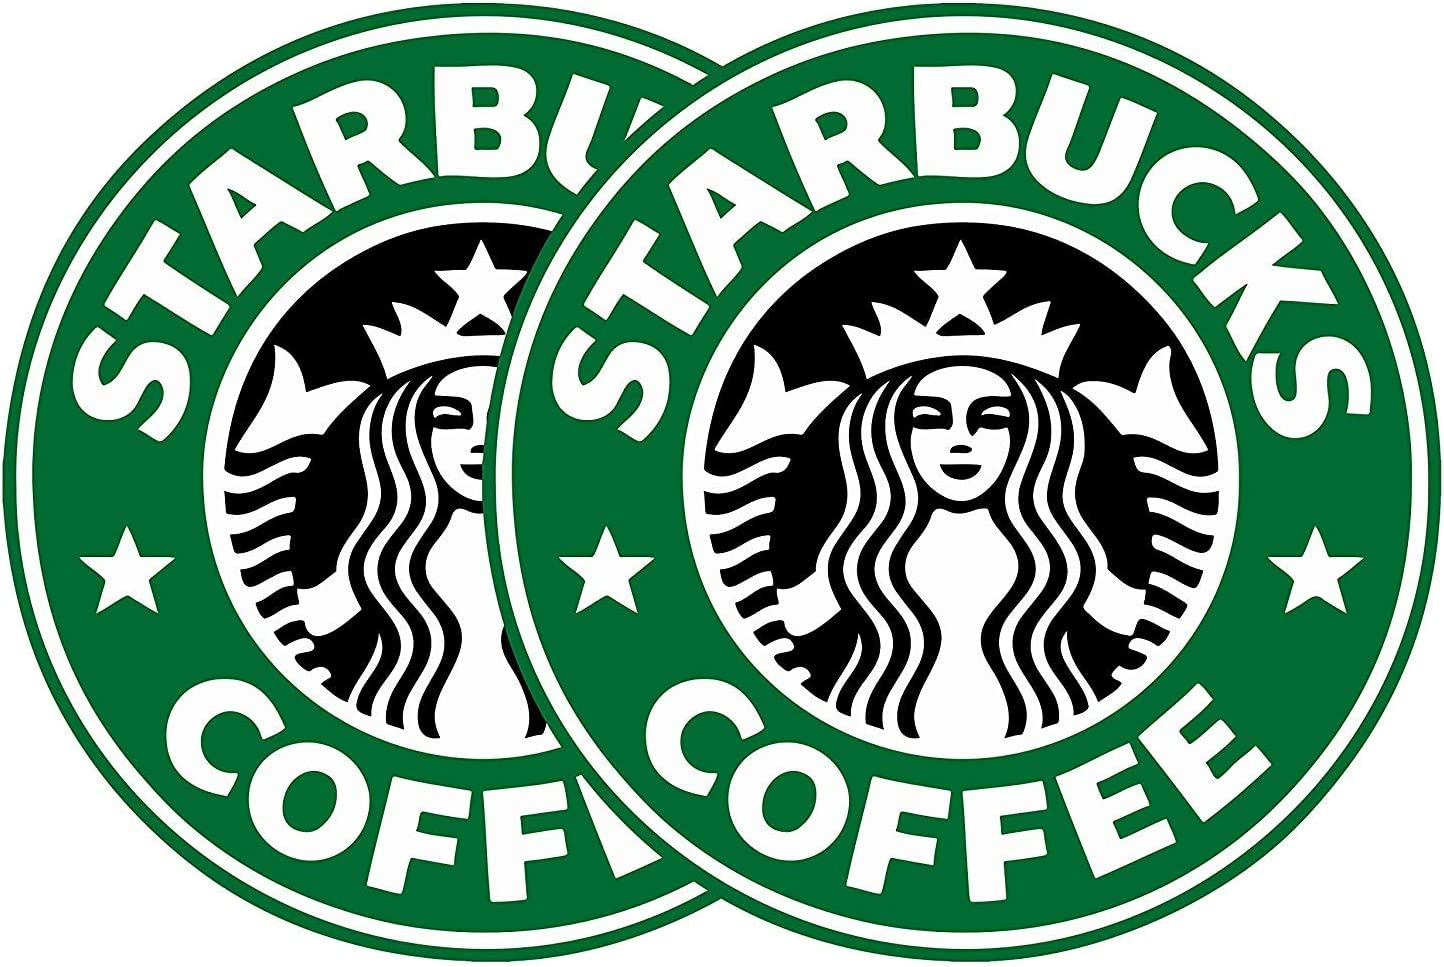 Delzam 3 2 Pack Starbucks Coffee Logo Vinyl Decal Sticker car Laptop Phone case Bumper etc